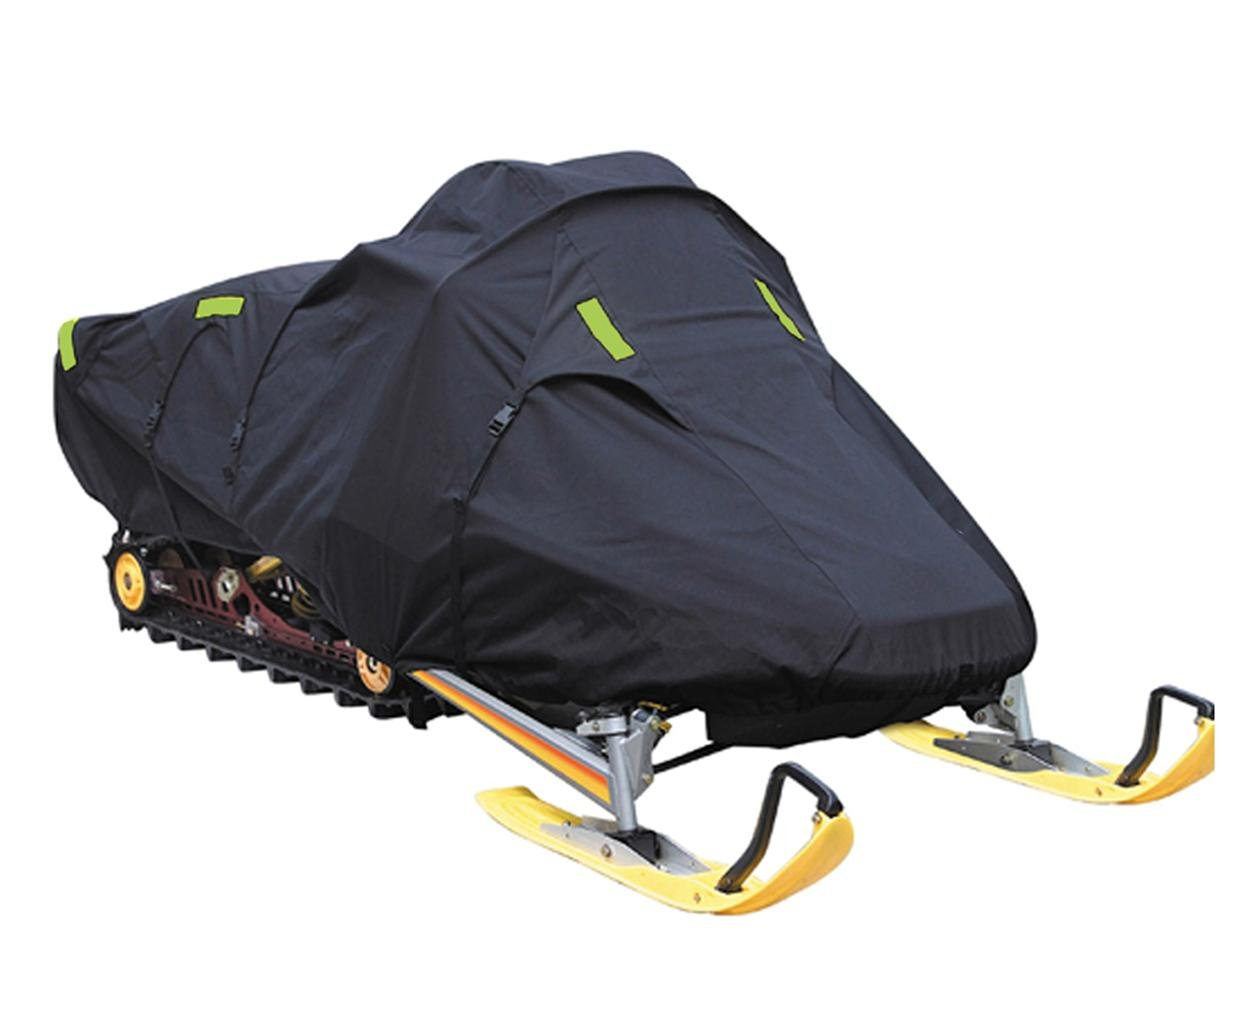 Trailerable Snowmobile Snow Machine Sled Cover Arctic Cat Powder Extreme 1996 1997 1998 by SBU